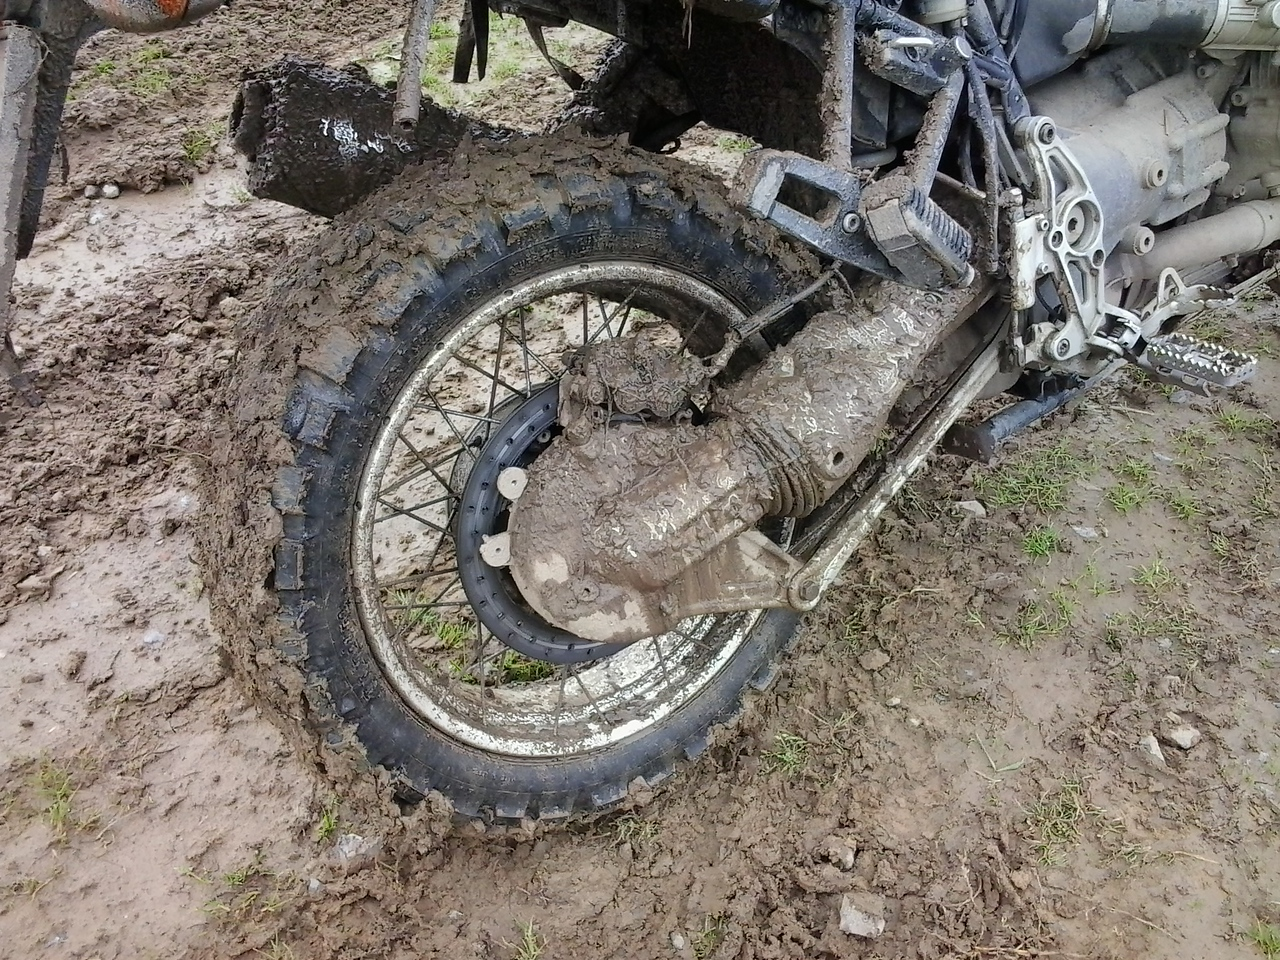 Let's get dirty baby